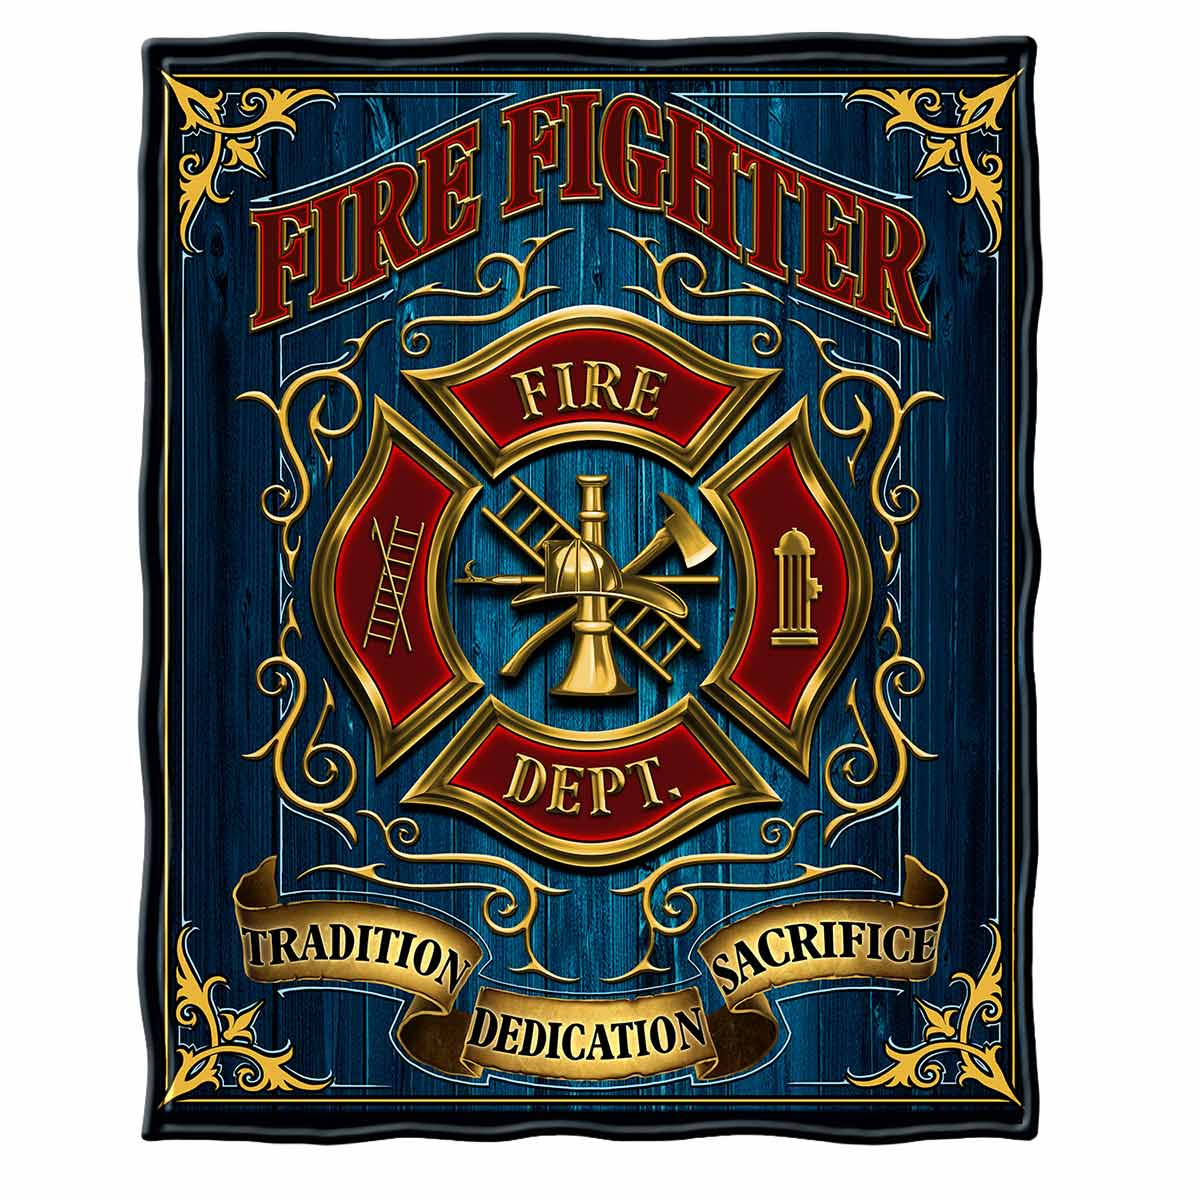 Volunteer Fire Tradition Sacrifice Dedication Premium Blanket